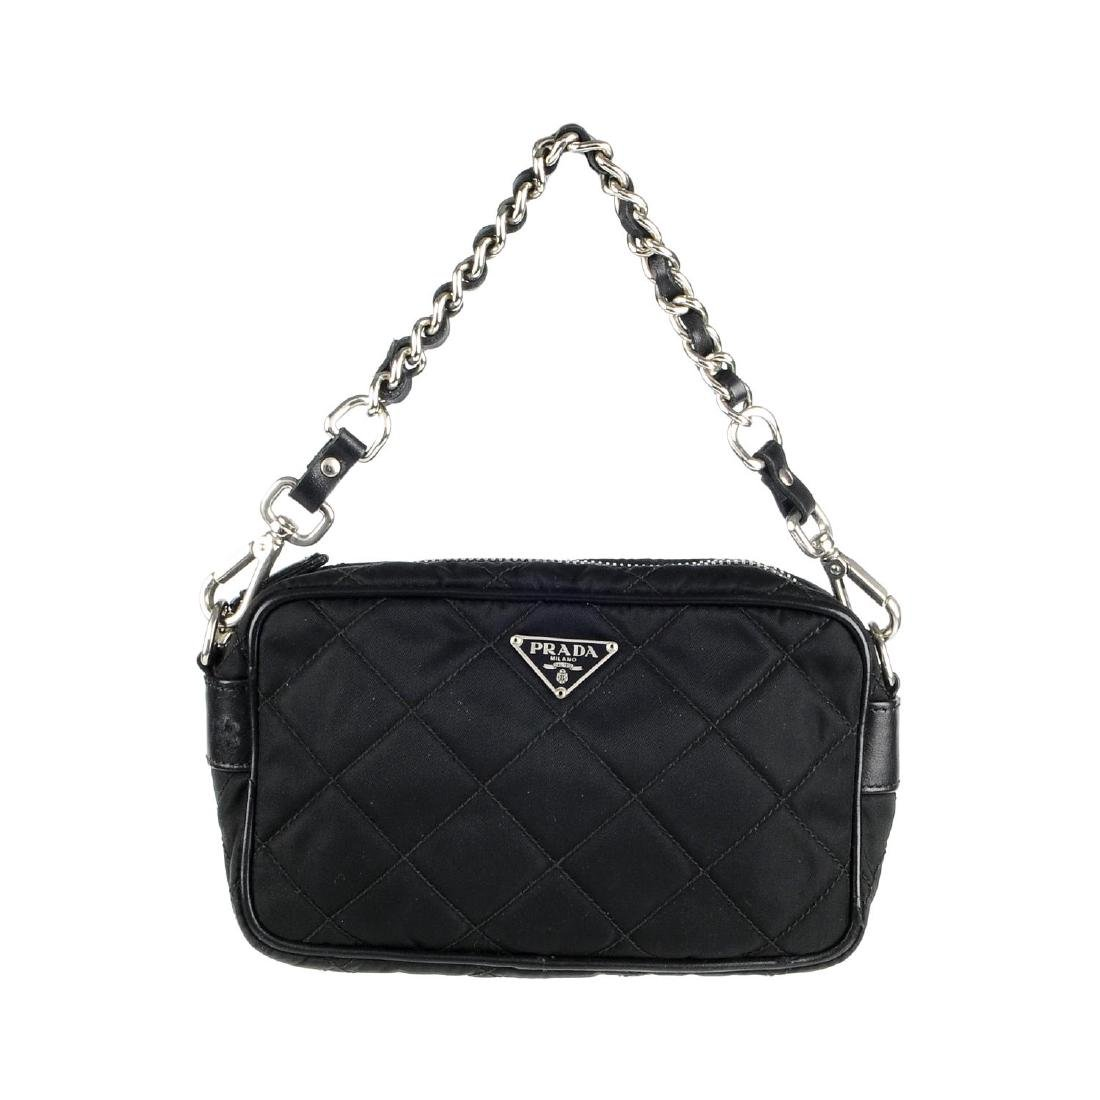 PRADA - a small nylon quilted camera handbag. Designed